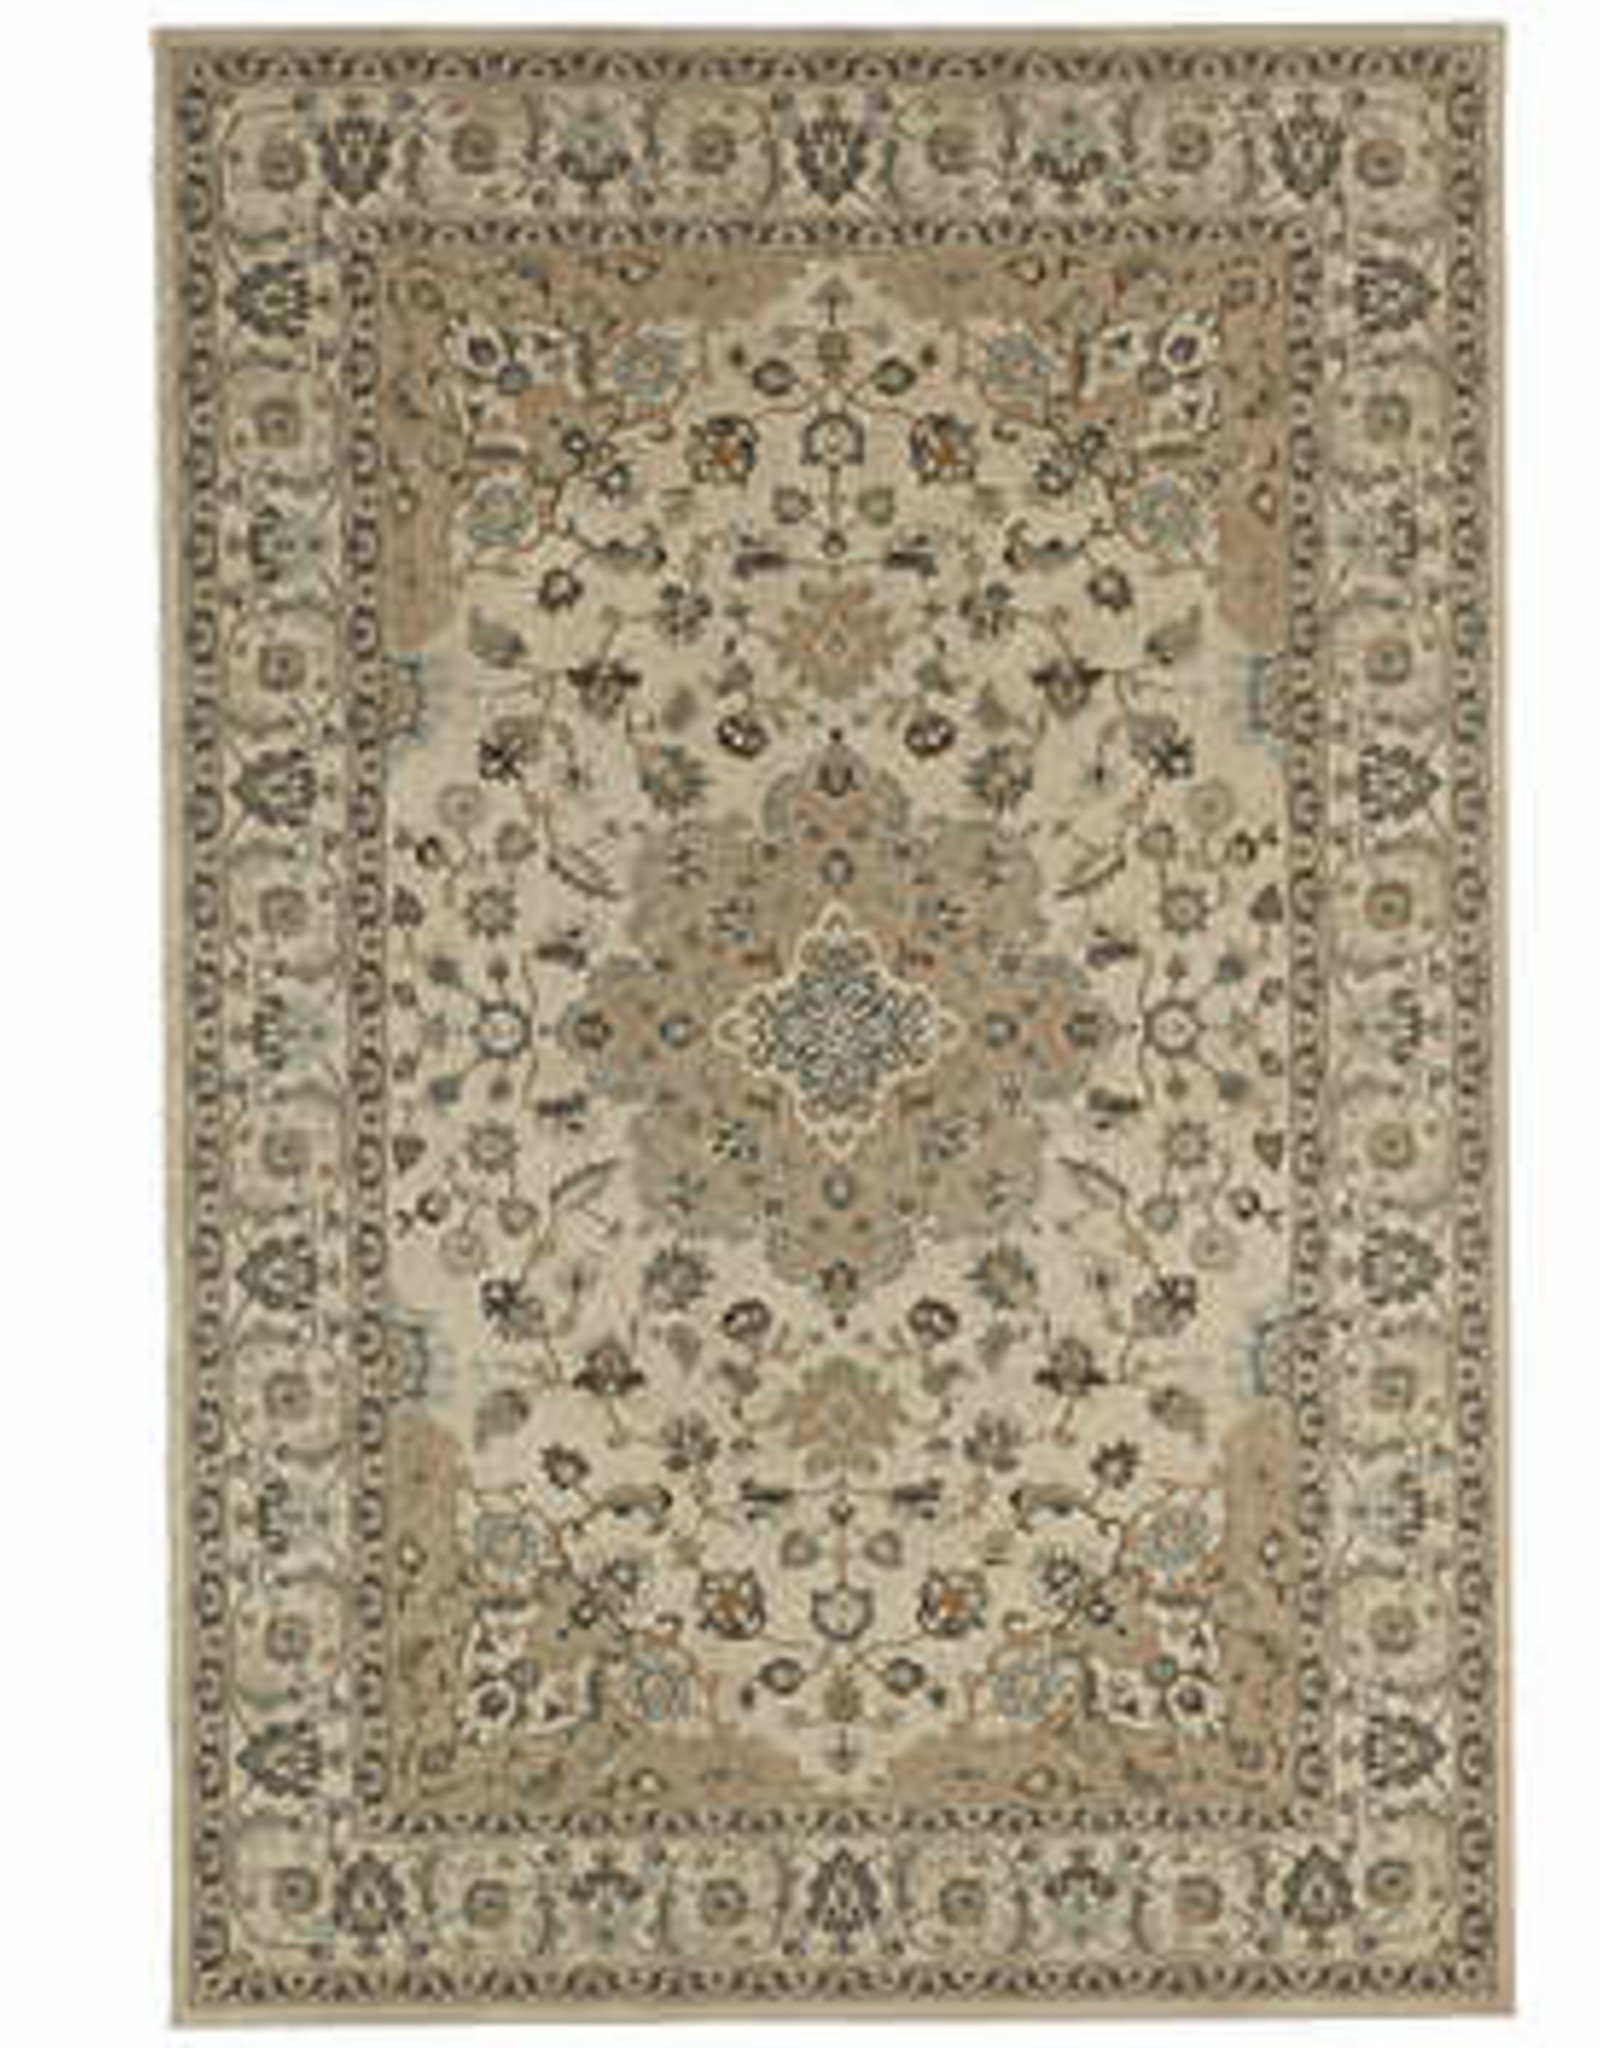 GA GERTMENIAN AND SONS 6x9 Thomasville Timeless Classic Rug Collection, Elgin Ivory